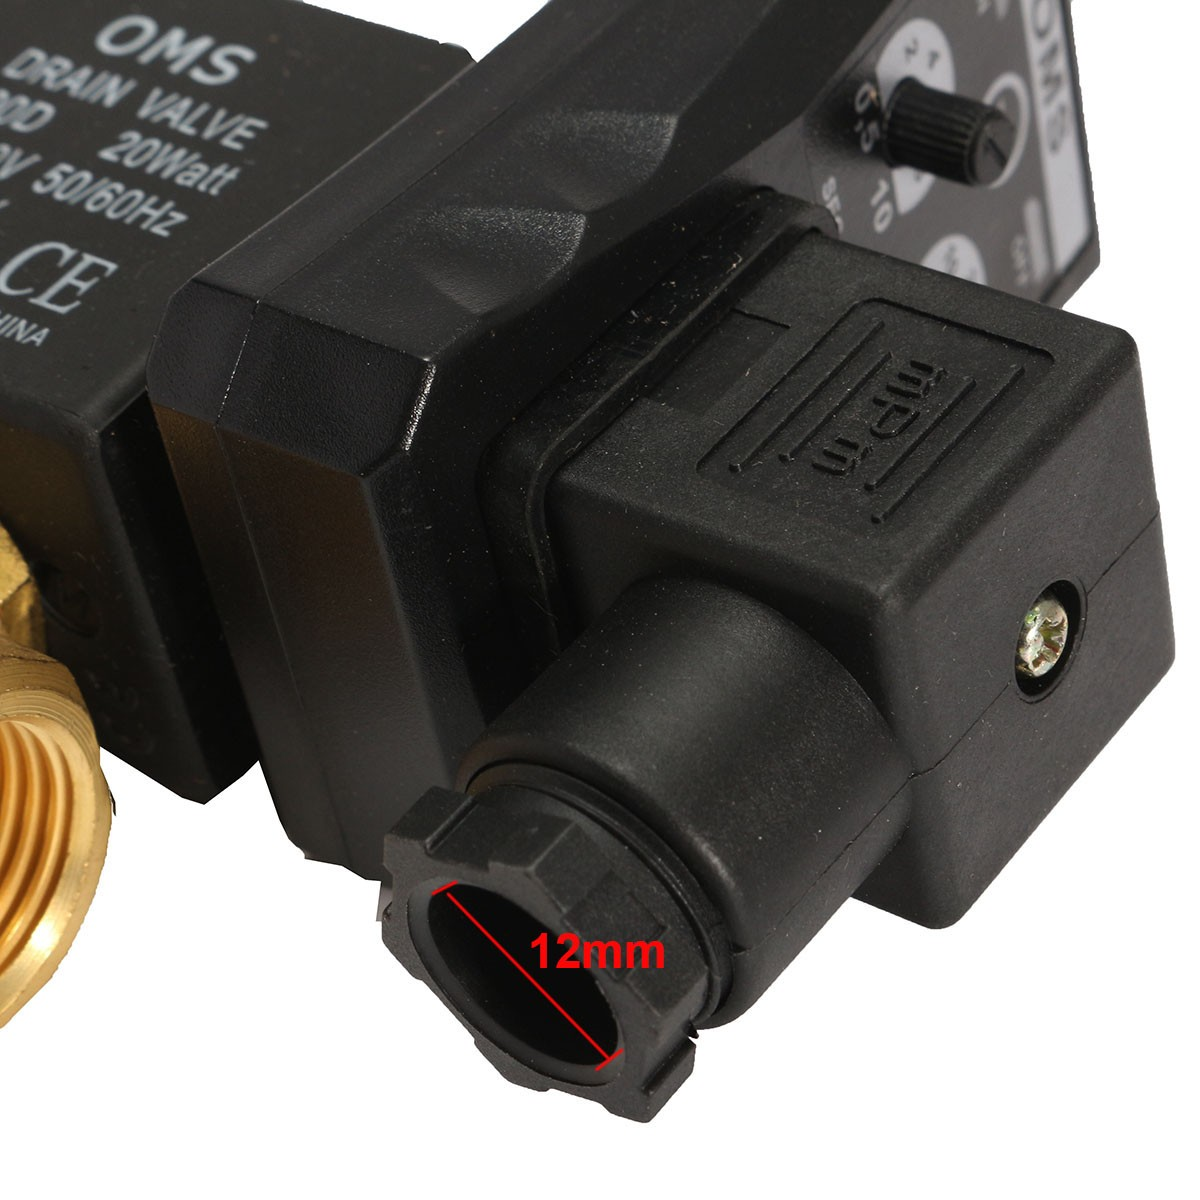 1/2inch AC 220V Automatic Electronic Timed Valve Air Compressed Gas Drain Valve